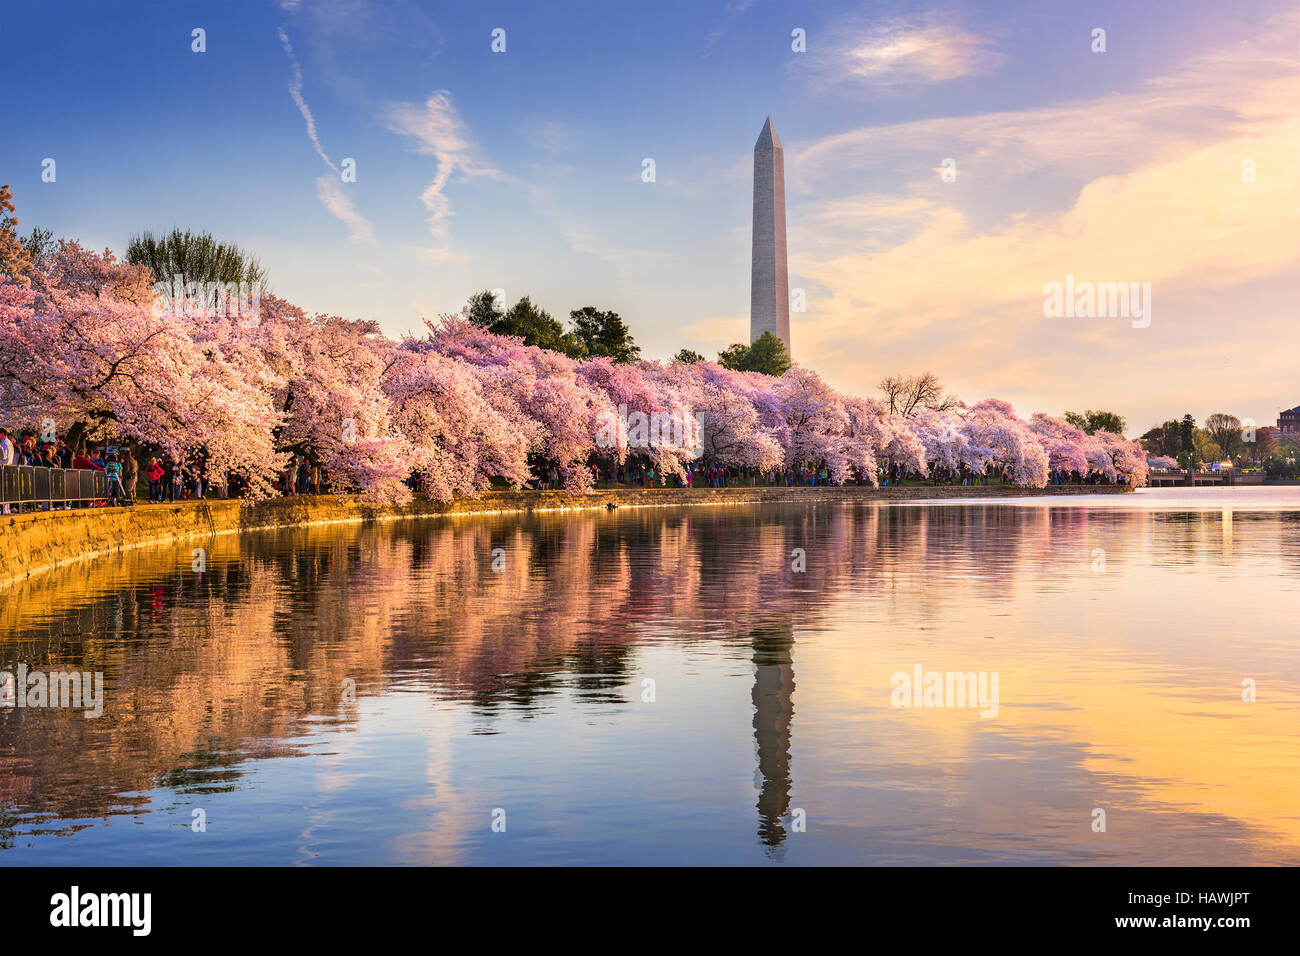 Washington DC, USA at the tidal basin with Washington Monument in spring season. - Stock Image